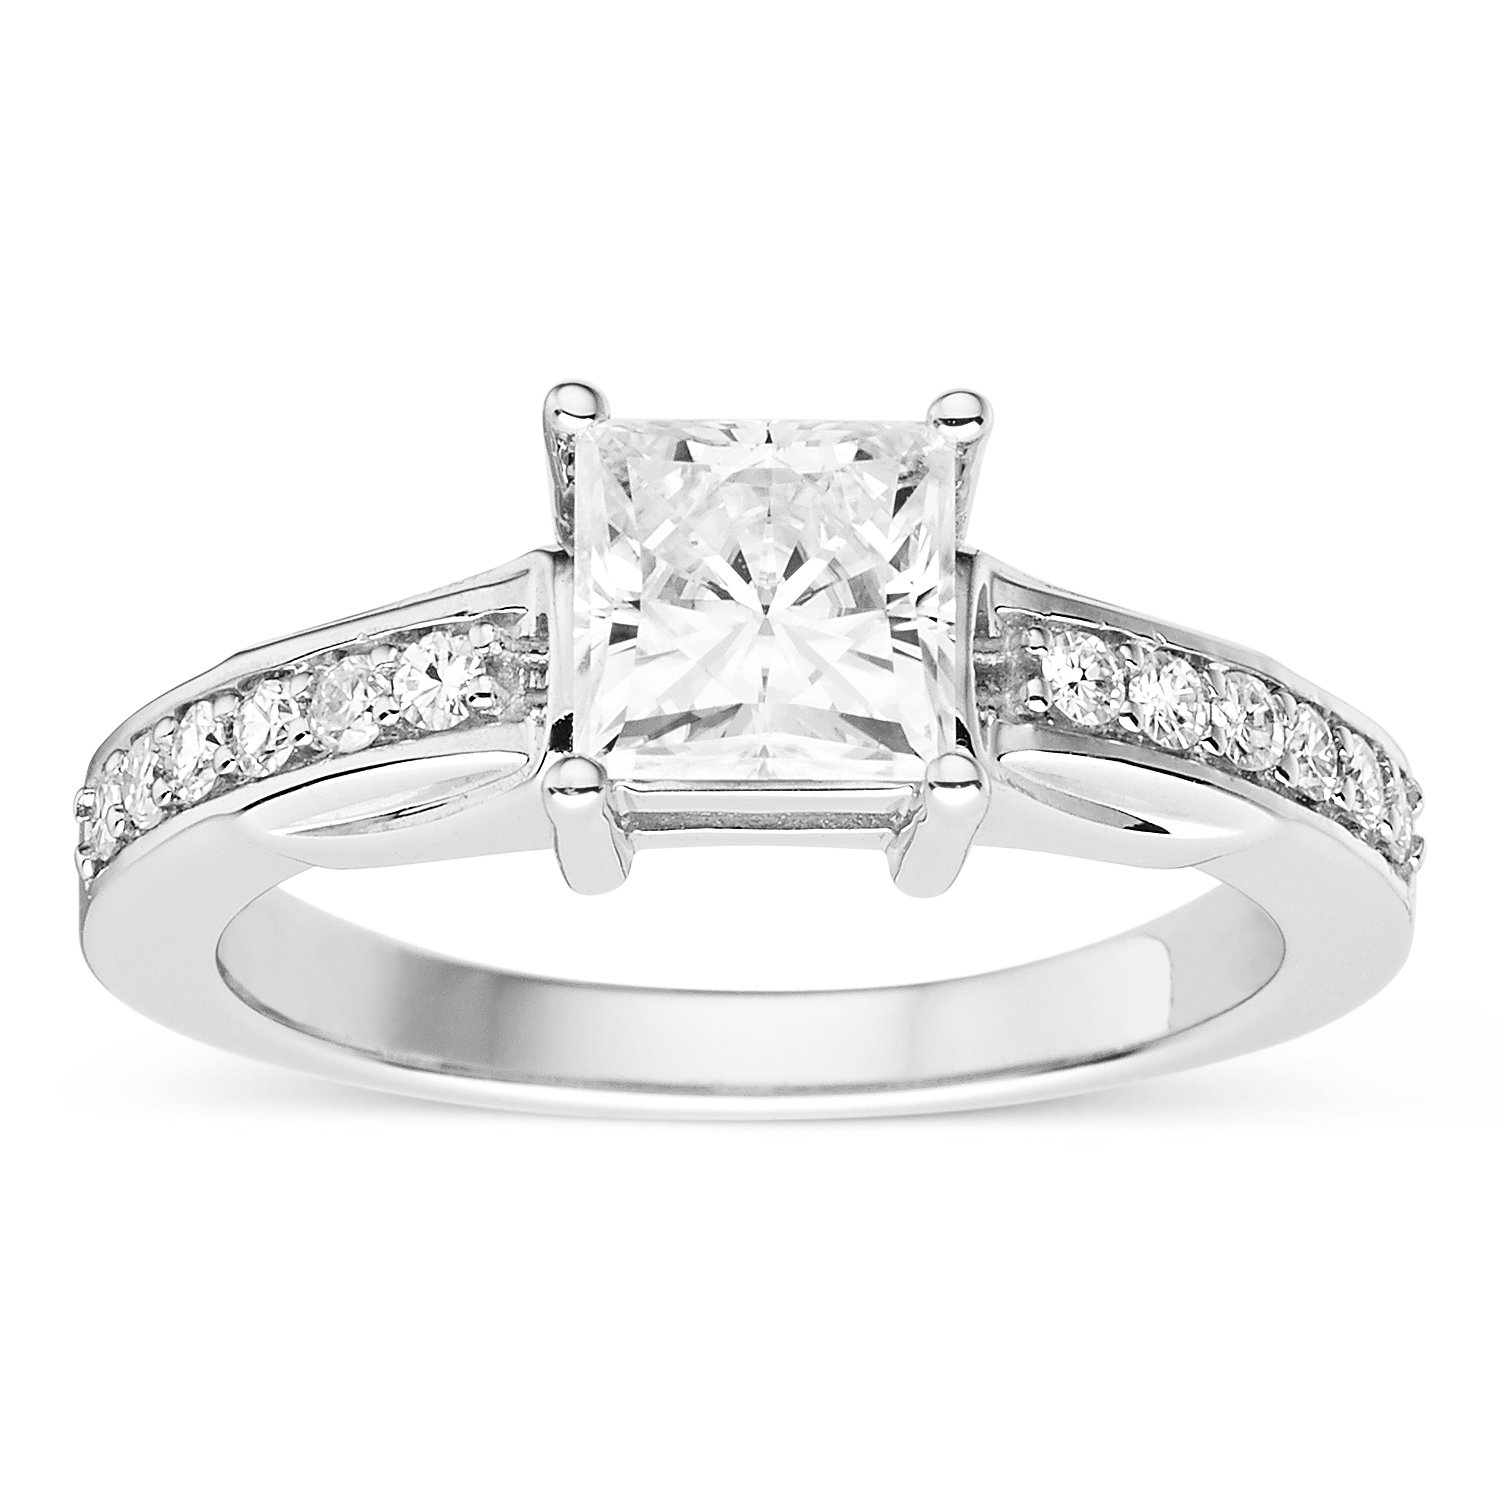 Forever Classic Square Cut 6.0mm Moissanite Engagement Ring-size 8, 1.48cttw DEW By Charles & Colvard